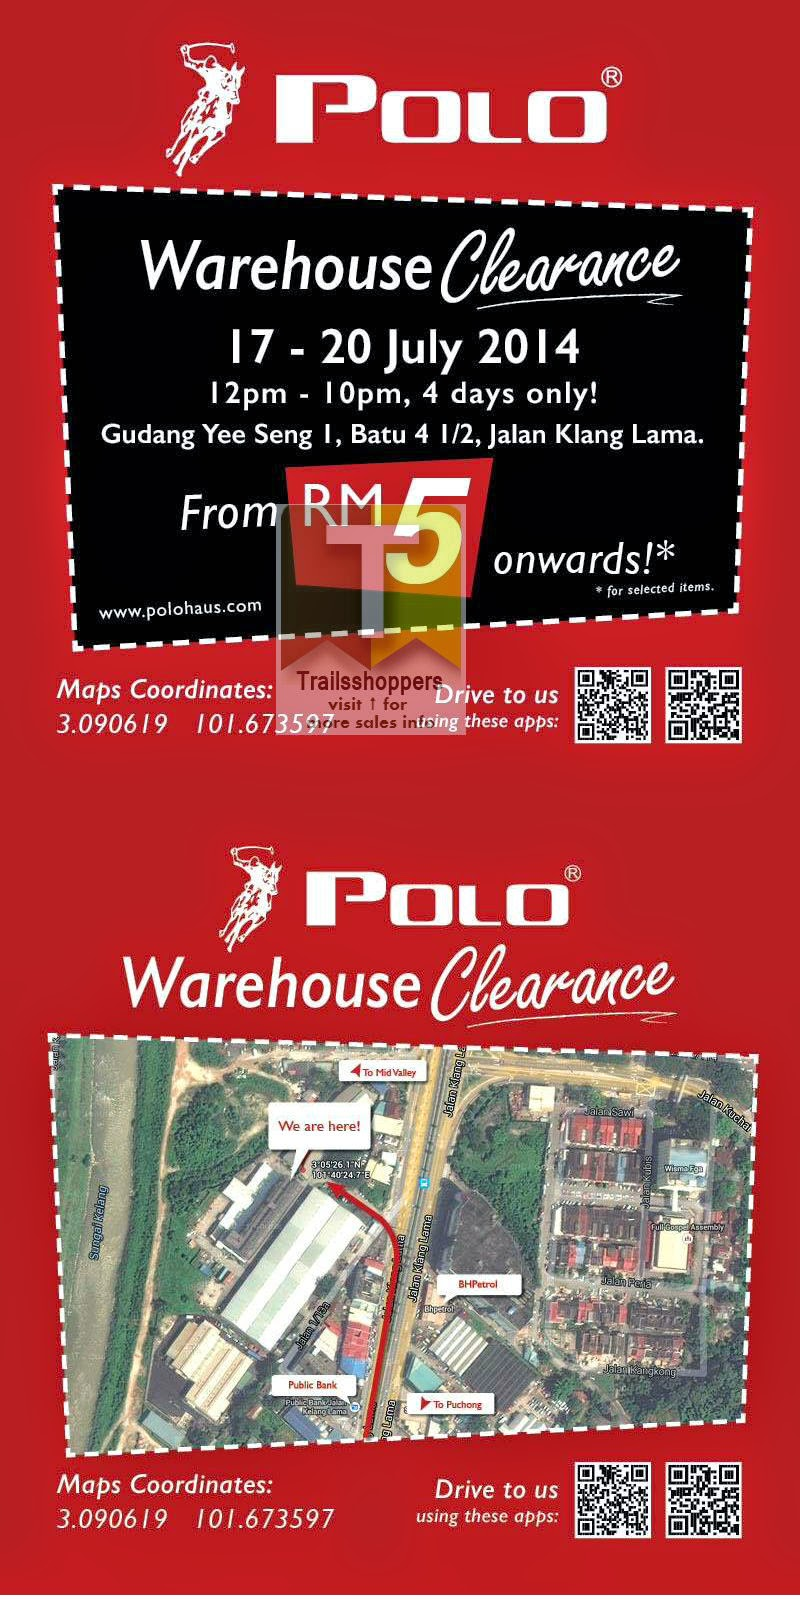 Polo Haus Warehouse Clearance Sale 2014 offers